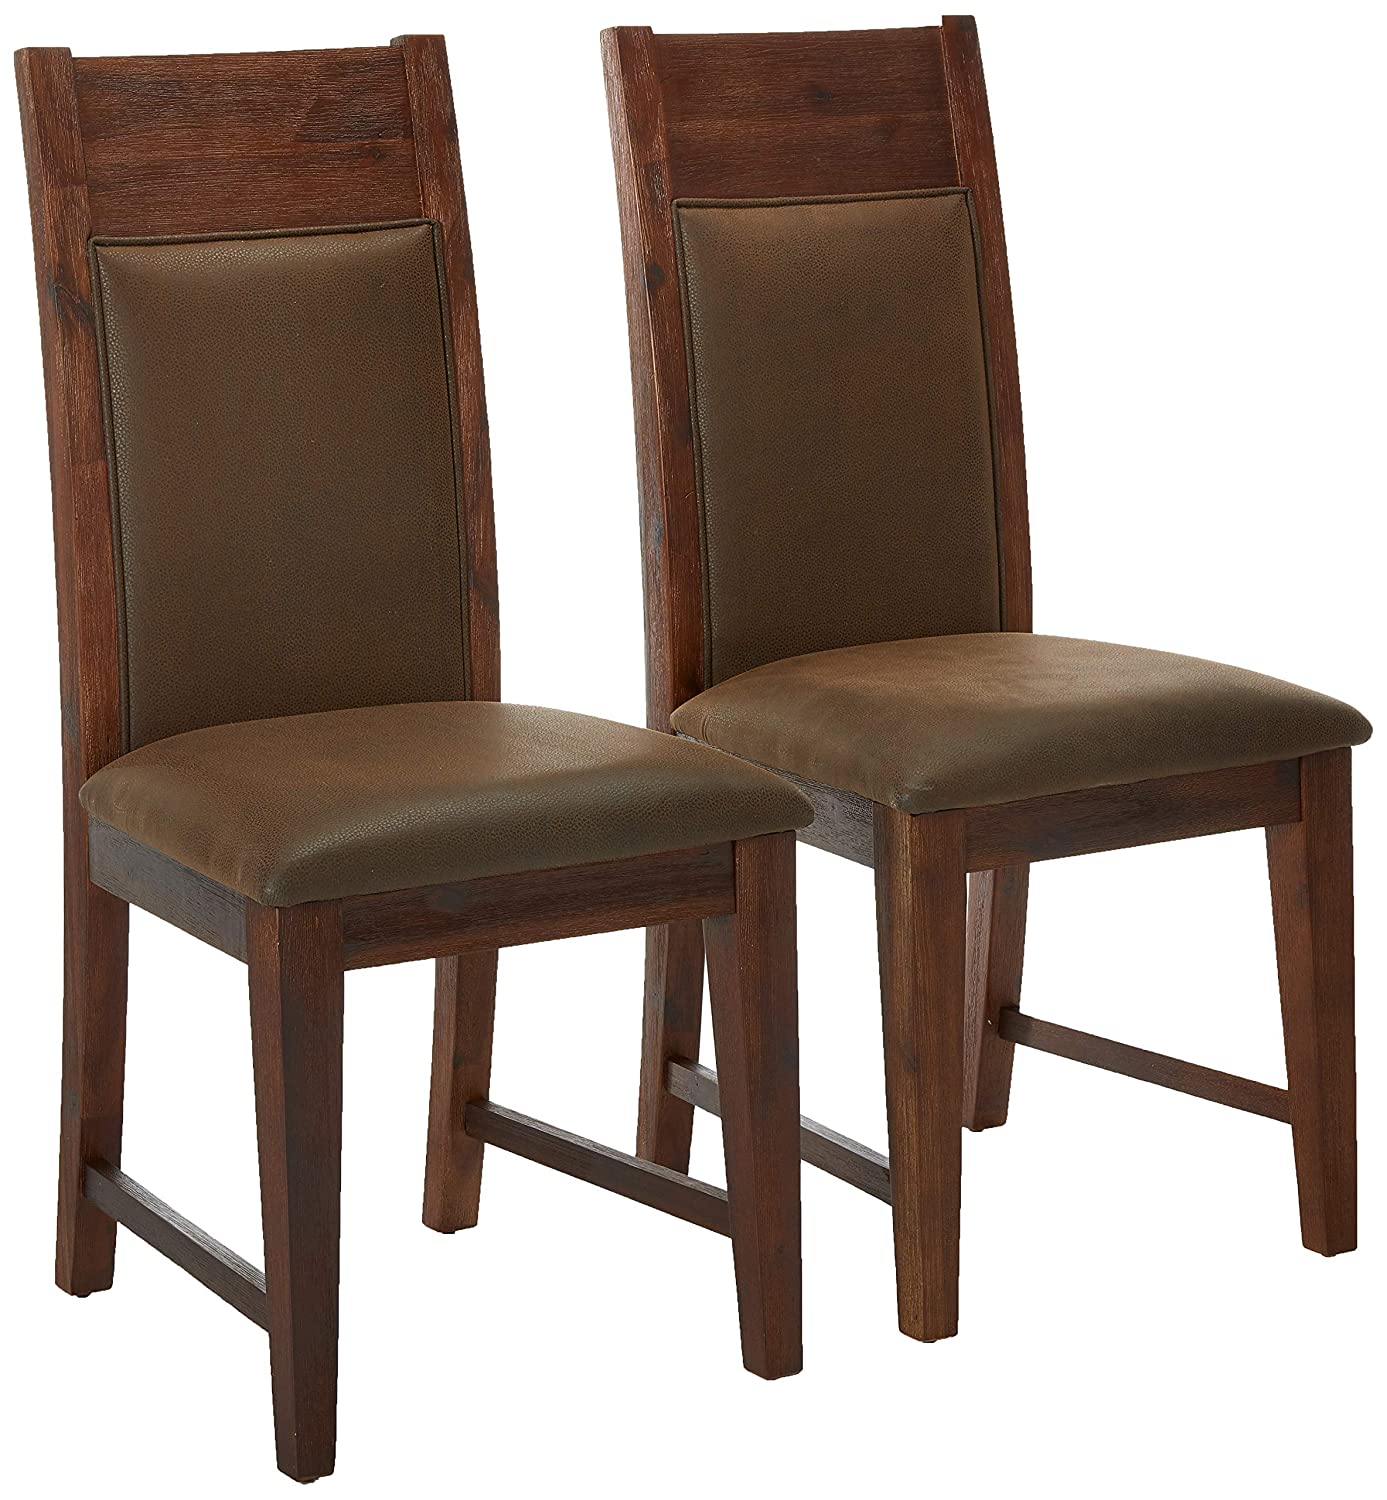 Alpine Furniture Pierre Dining Chair, Brown